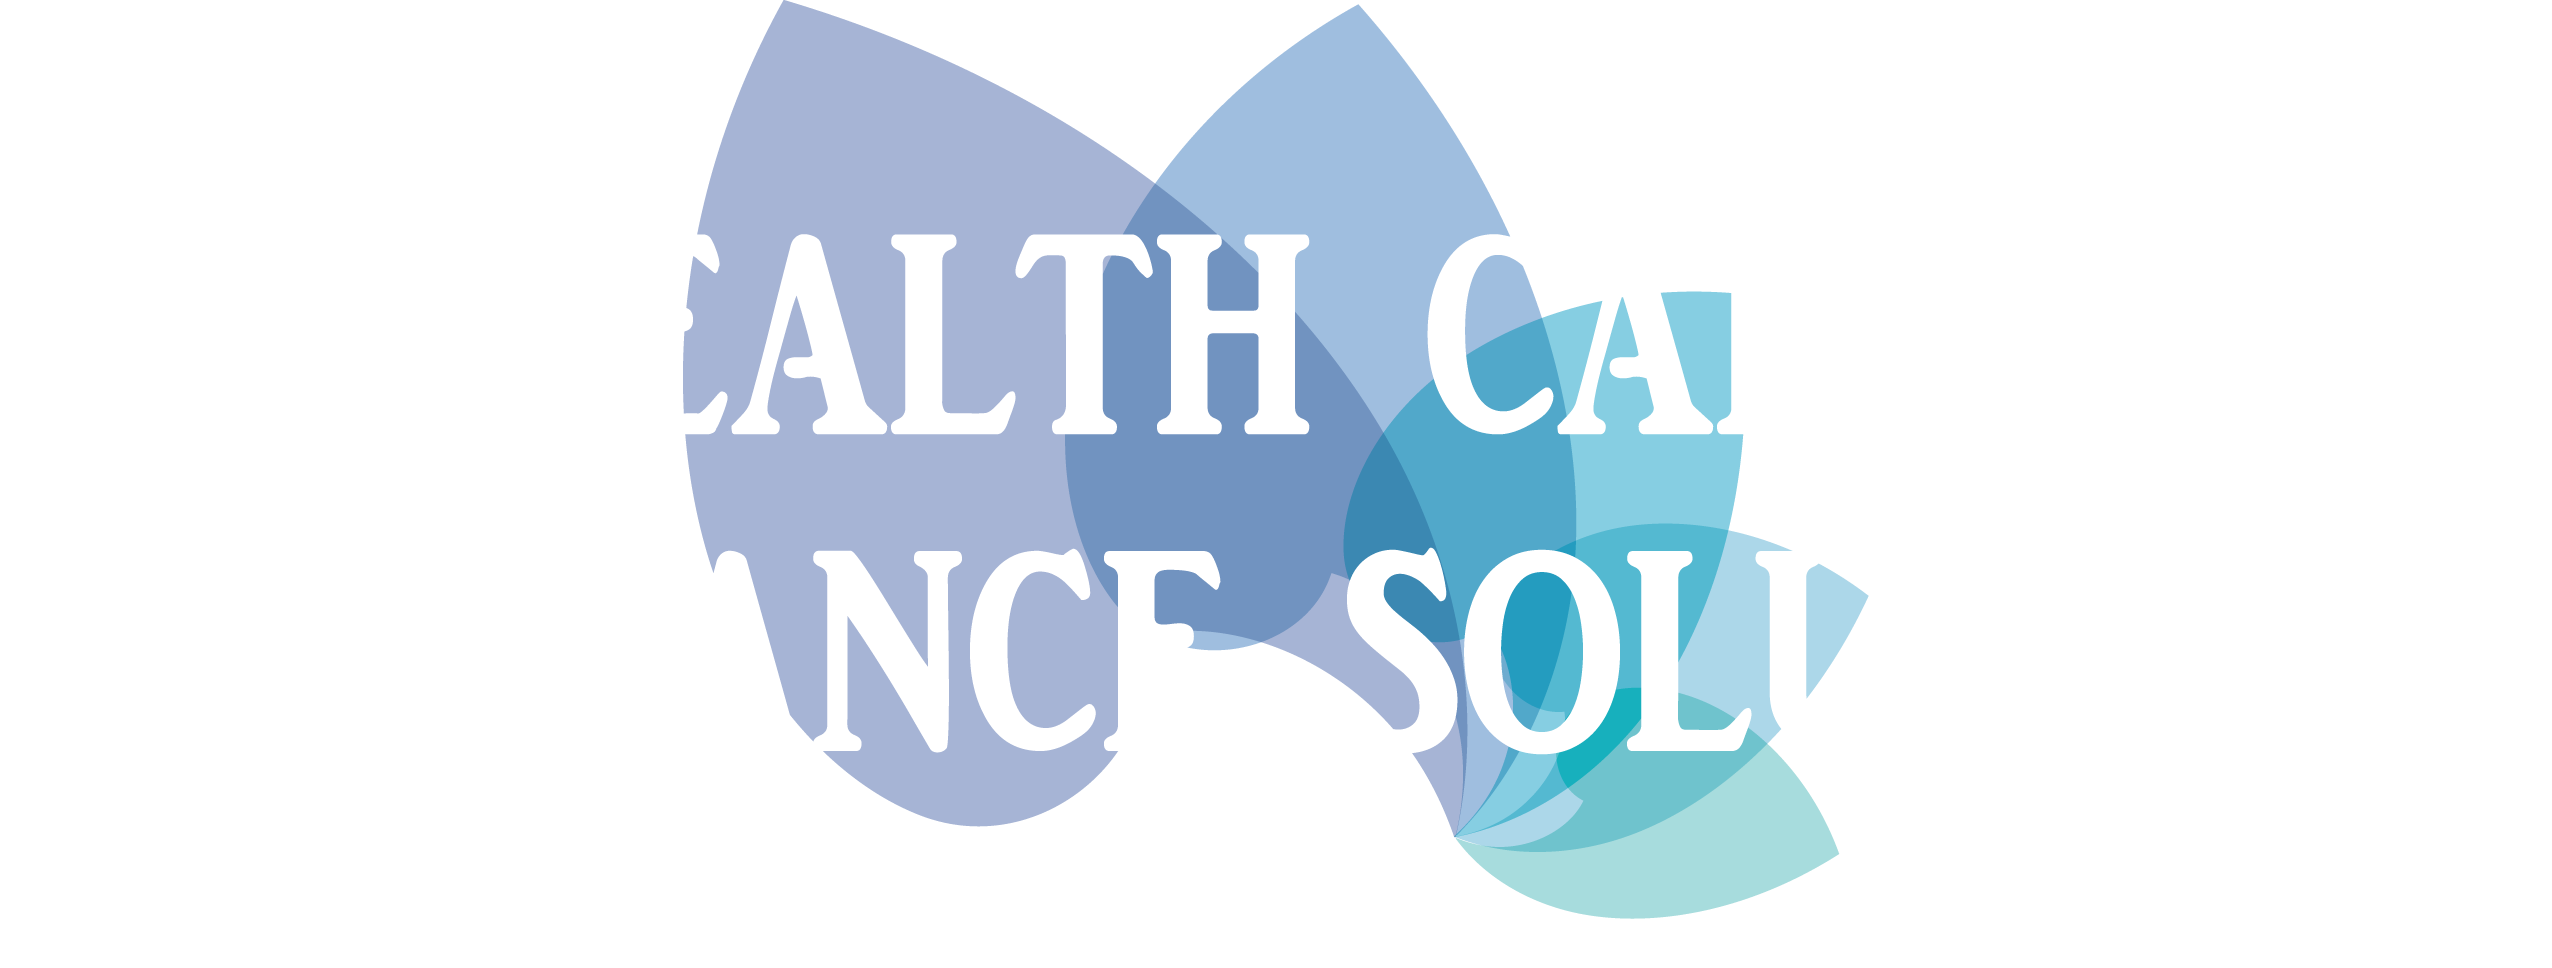 Health Care Insurance Solutions